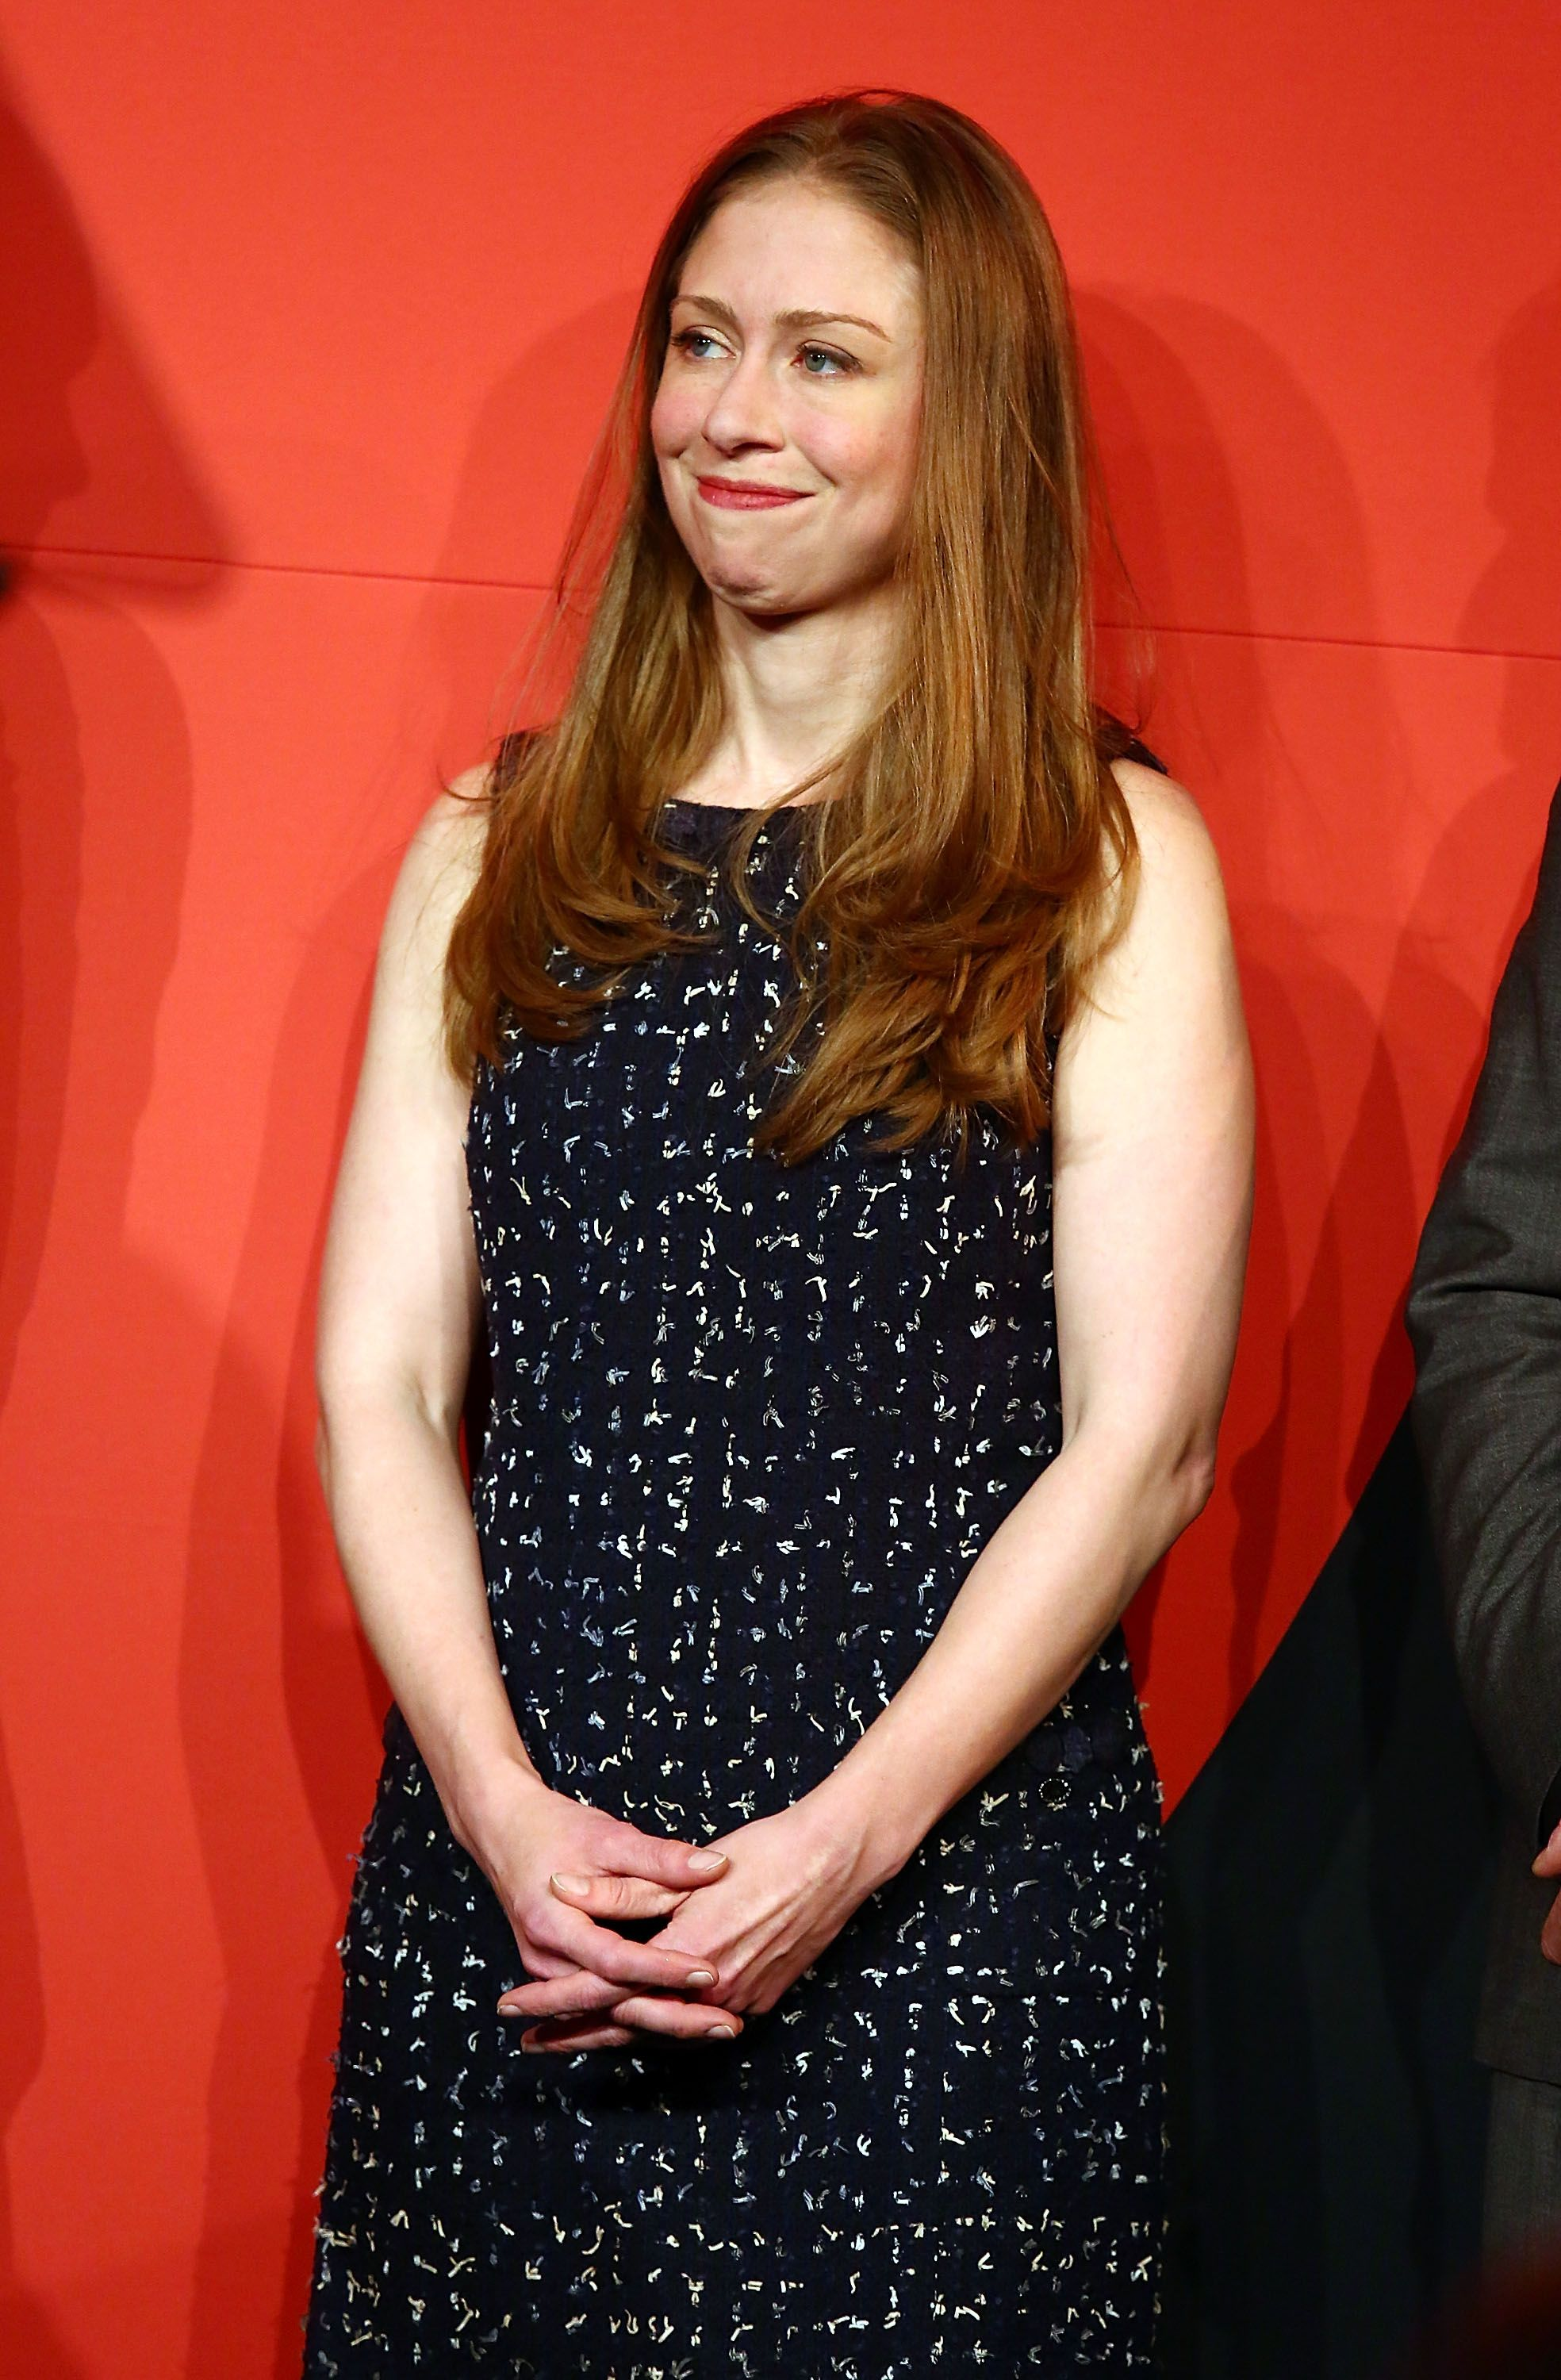 Chelsea Clinton at the National Design Awards held at the Cooper Hewitt, Smithsonian Design Museum on October 19, 2017, in New York City | Photo: Astrid Stawiarz/Getty Images